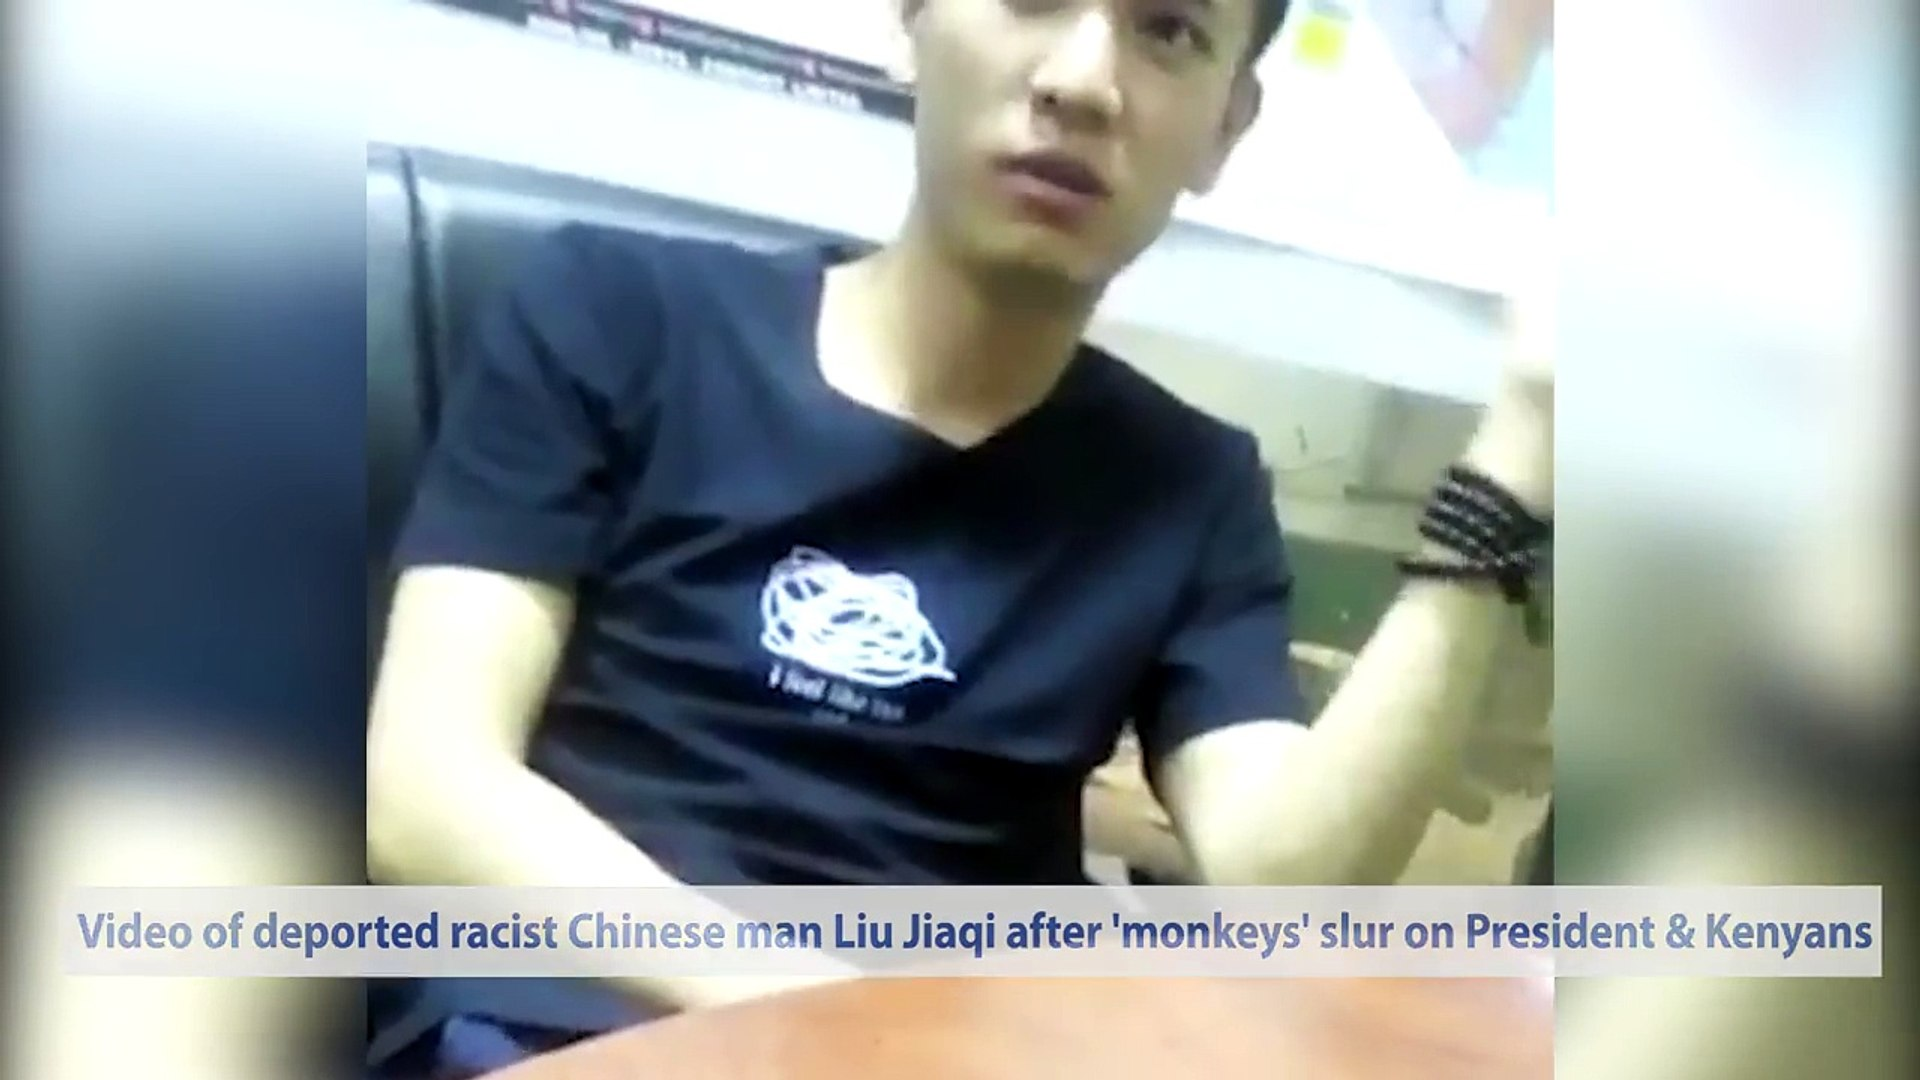 Kenya Deports Racist Chinese Man After Calling Kenyans & The President Monkeys